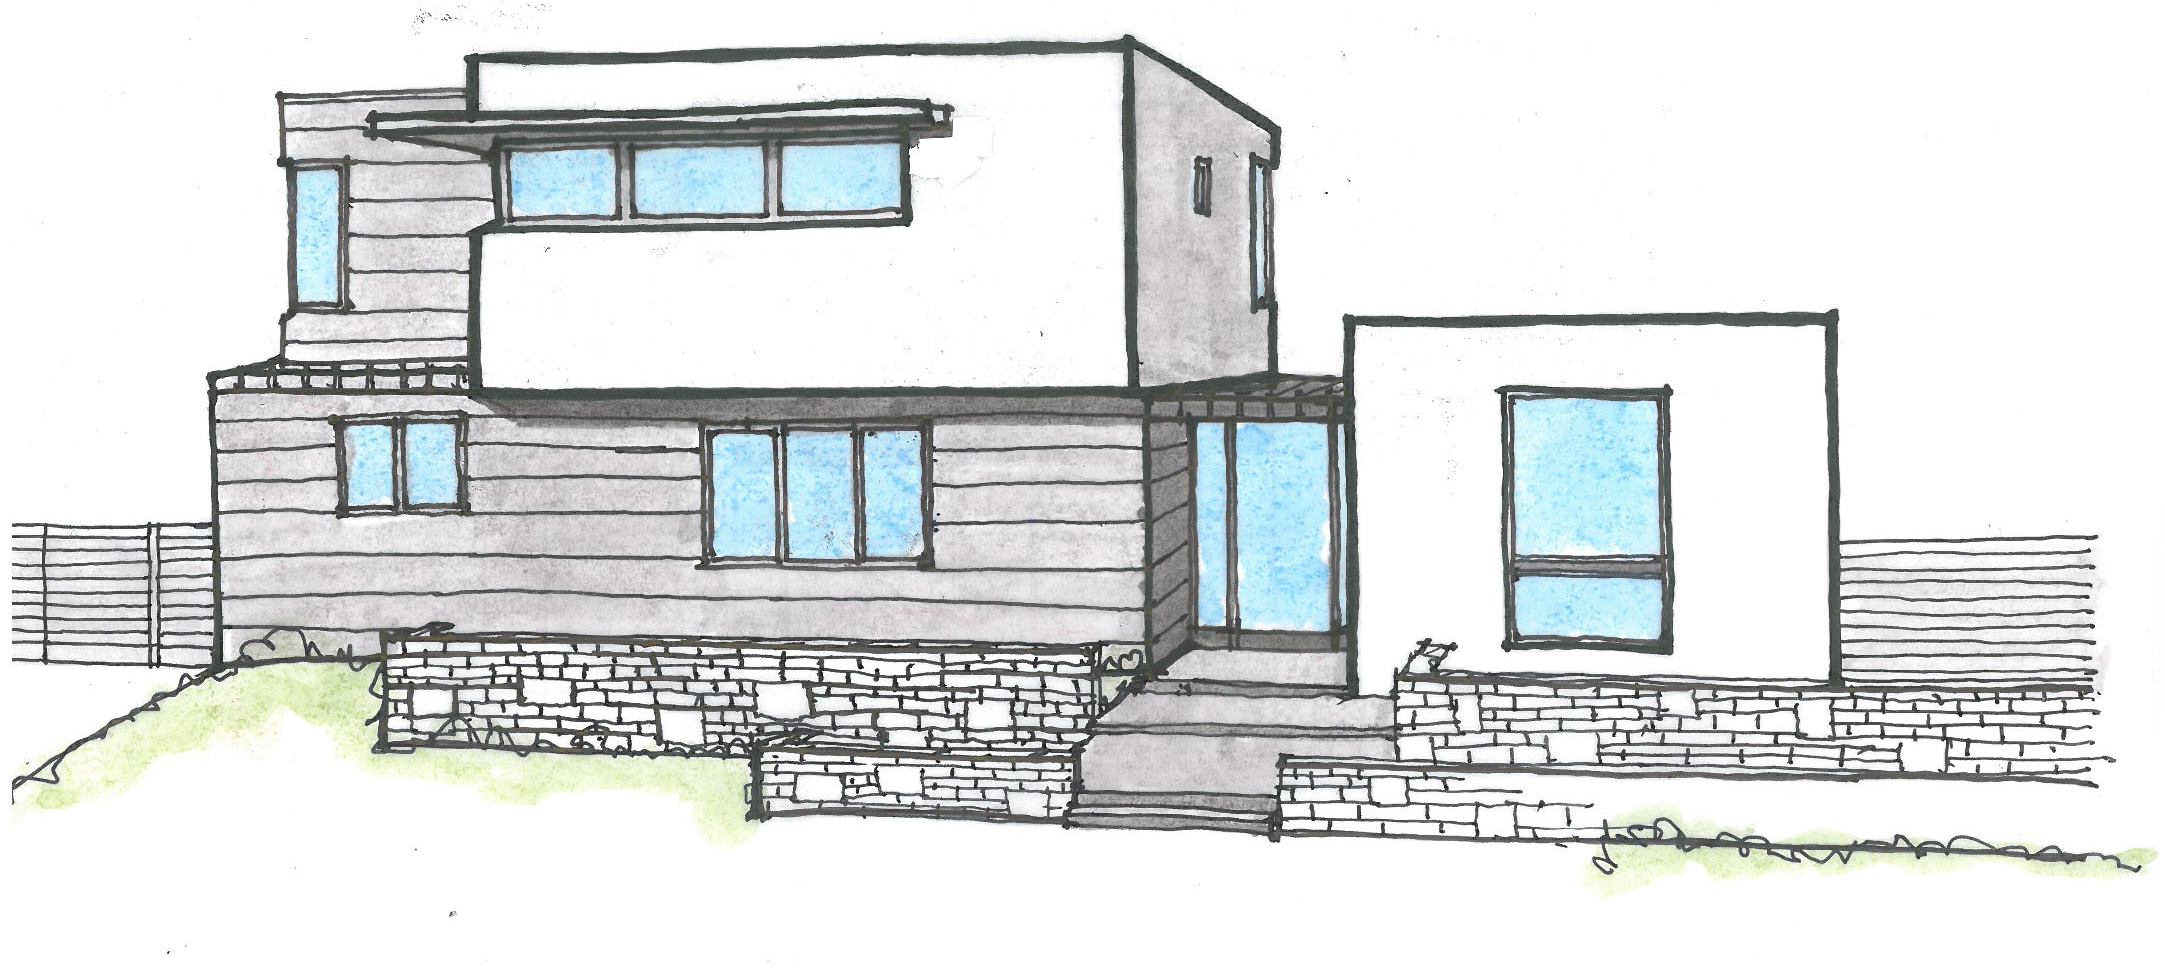 House architecture drawing at free for for Easy to use architectural design software